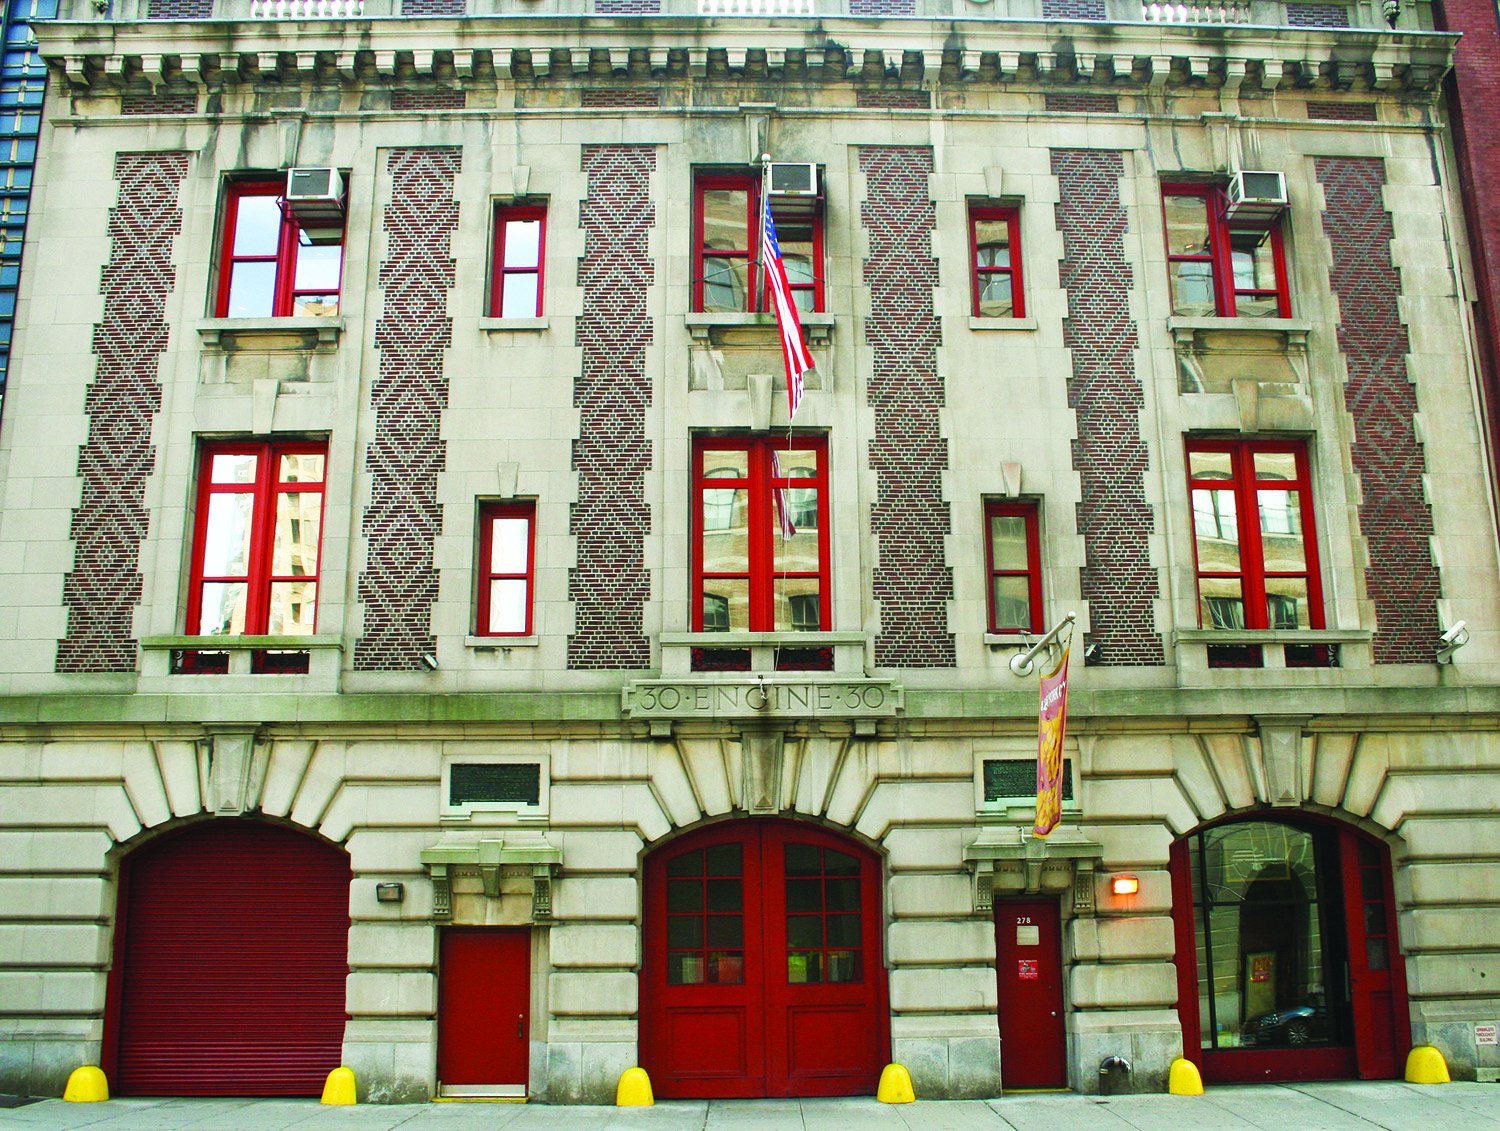 The New York Fire Museum is housed in a 1904 Beaux-Arts style building that was formerly the quarters for Engine Company No. 30. Image obtained from the New York Fire Museum.